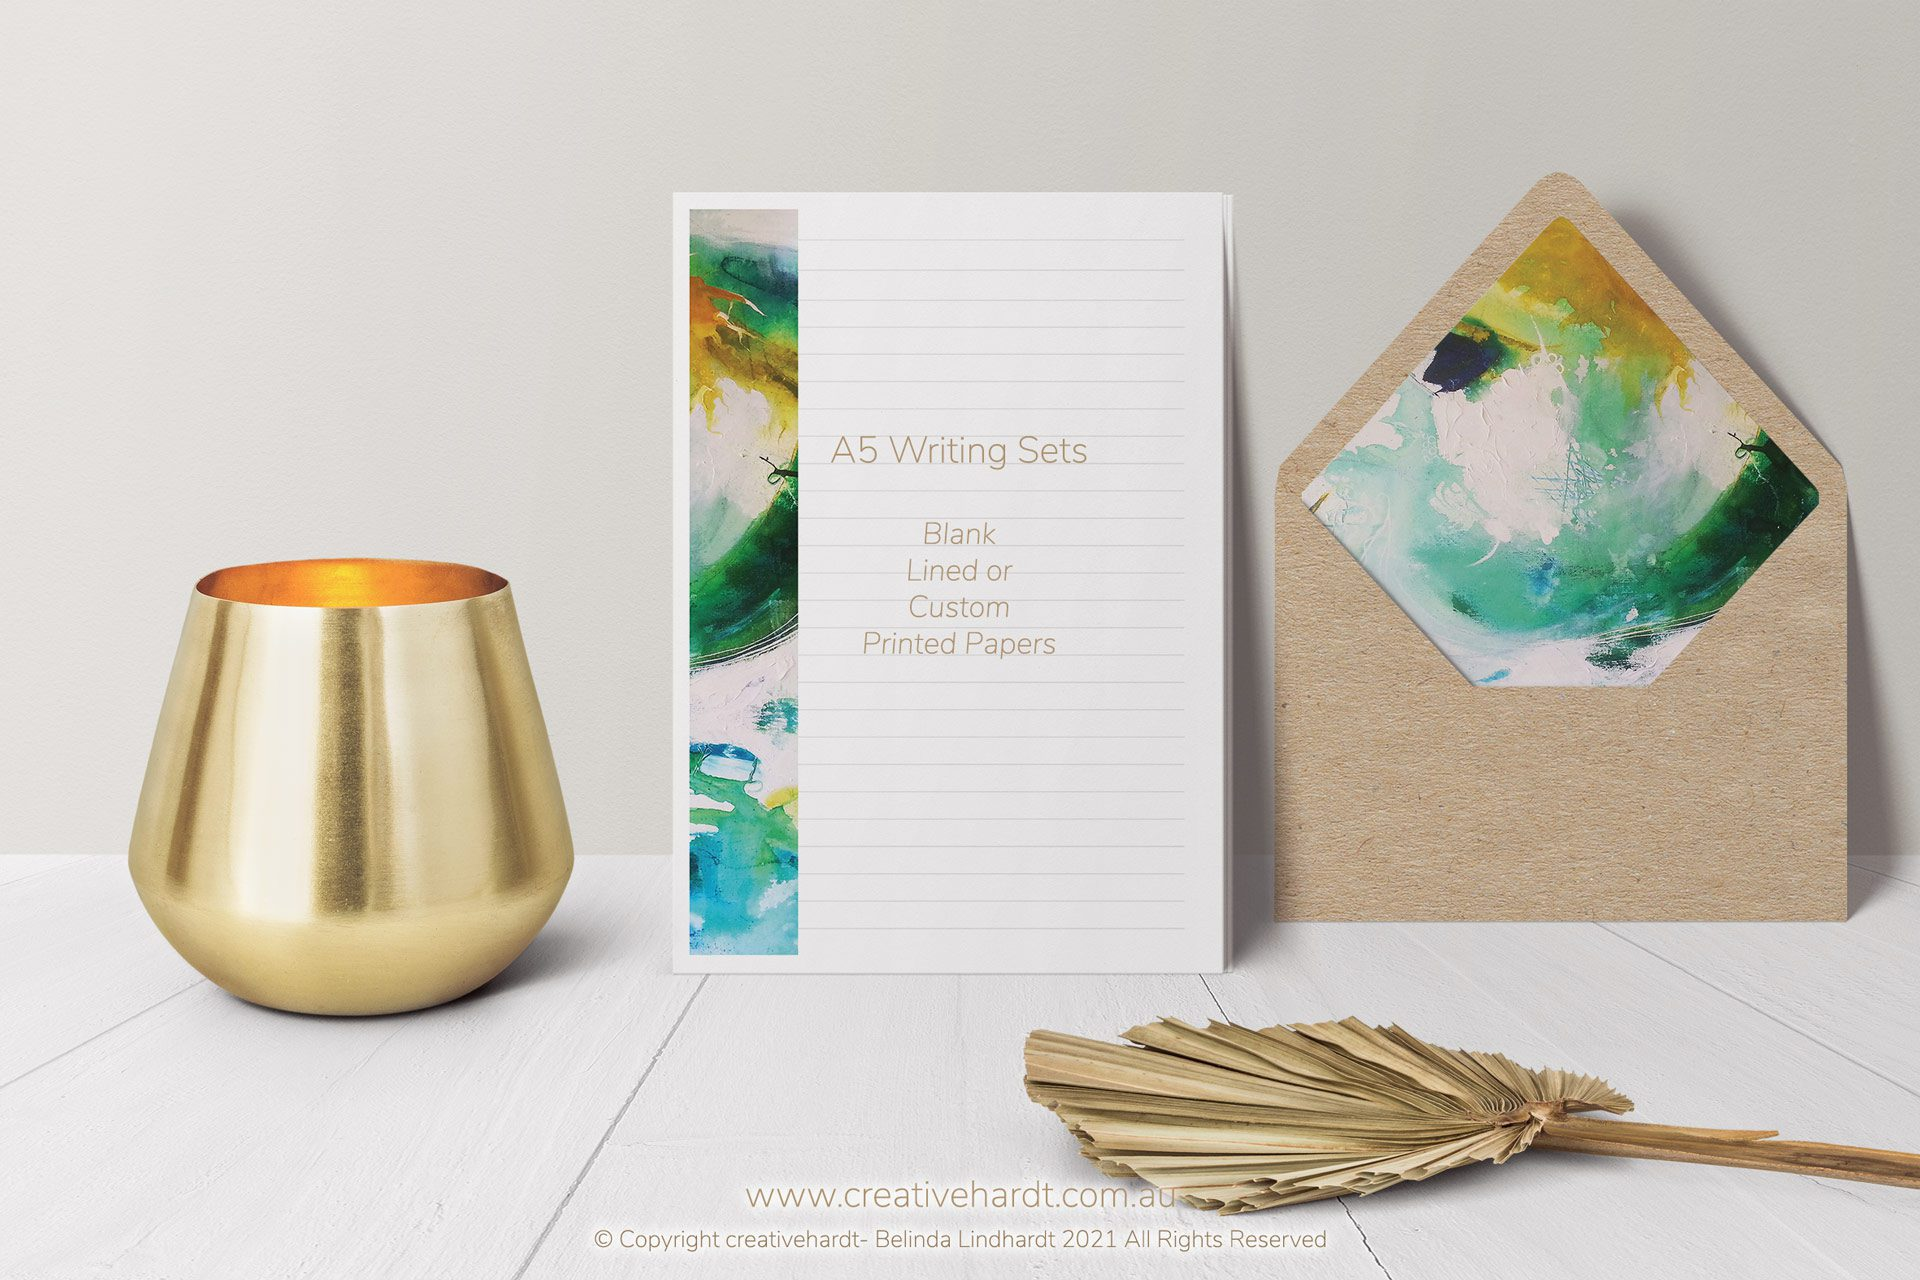 A5 Writing Set - Abstract Design with Enevelopes - by Australian Artist Belinda Lindhardt